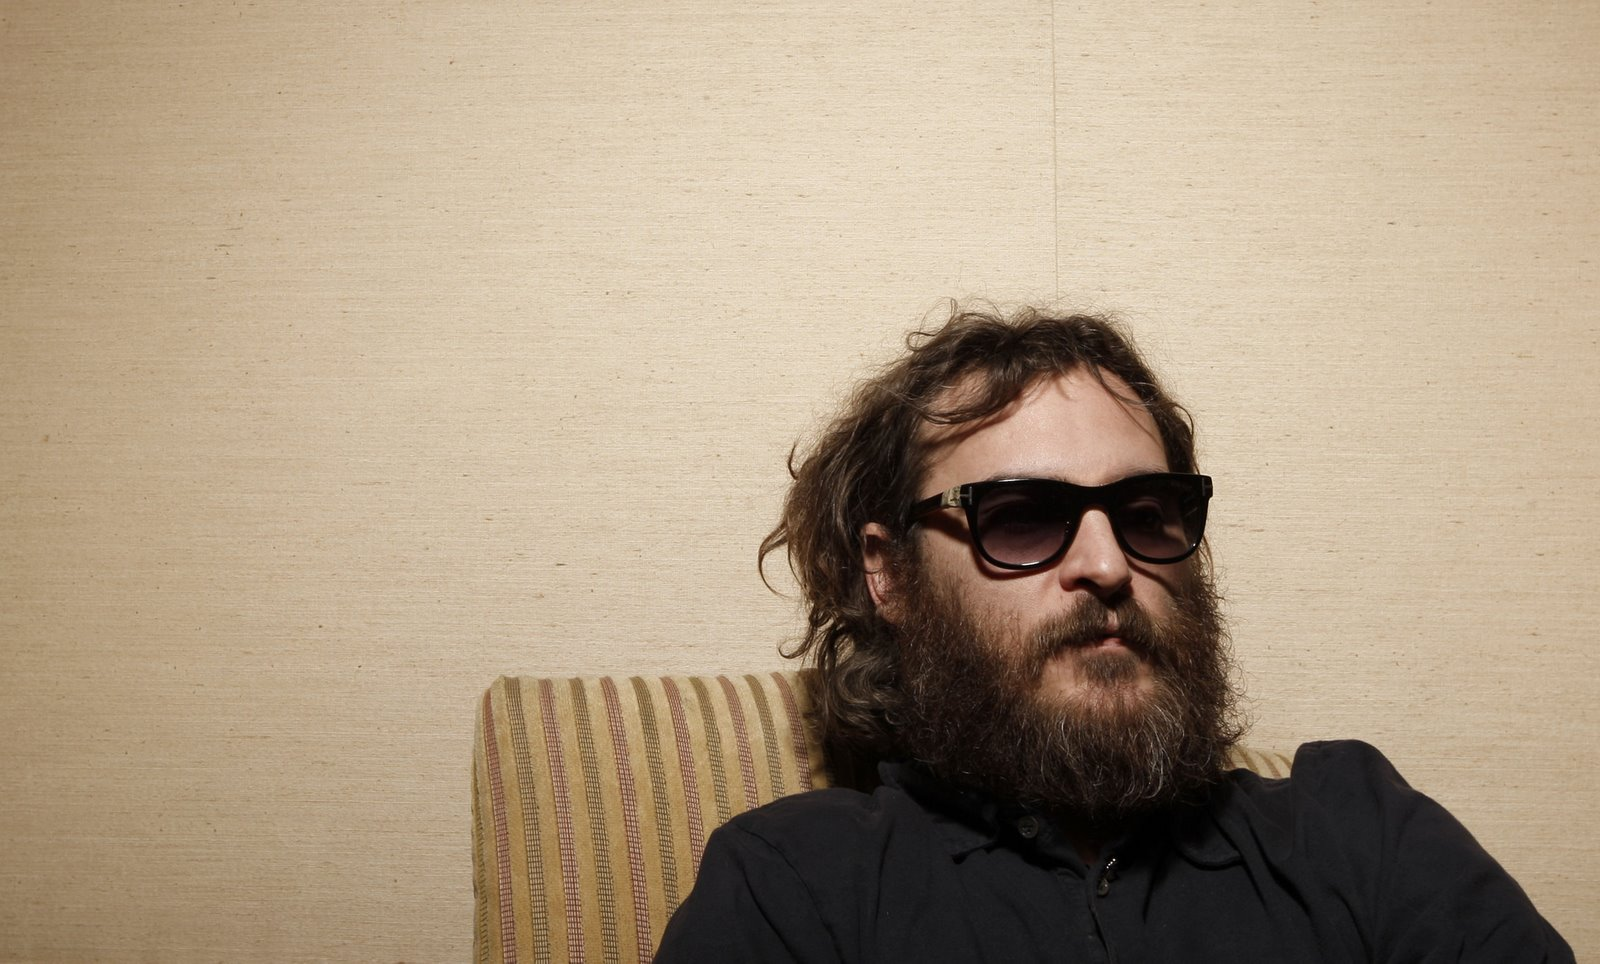 Actor Joaquin Phoenix poses for a portrait in Beverly Hills. He has a huge beard and is looking very scruffy.